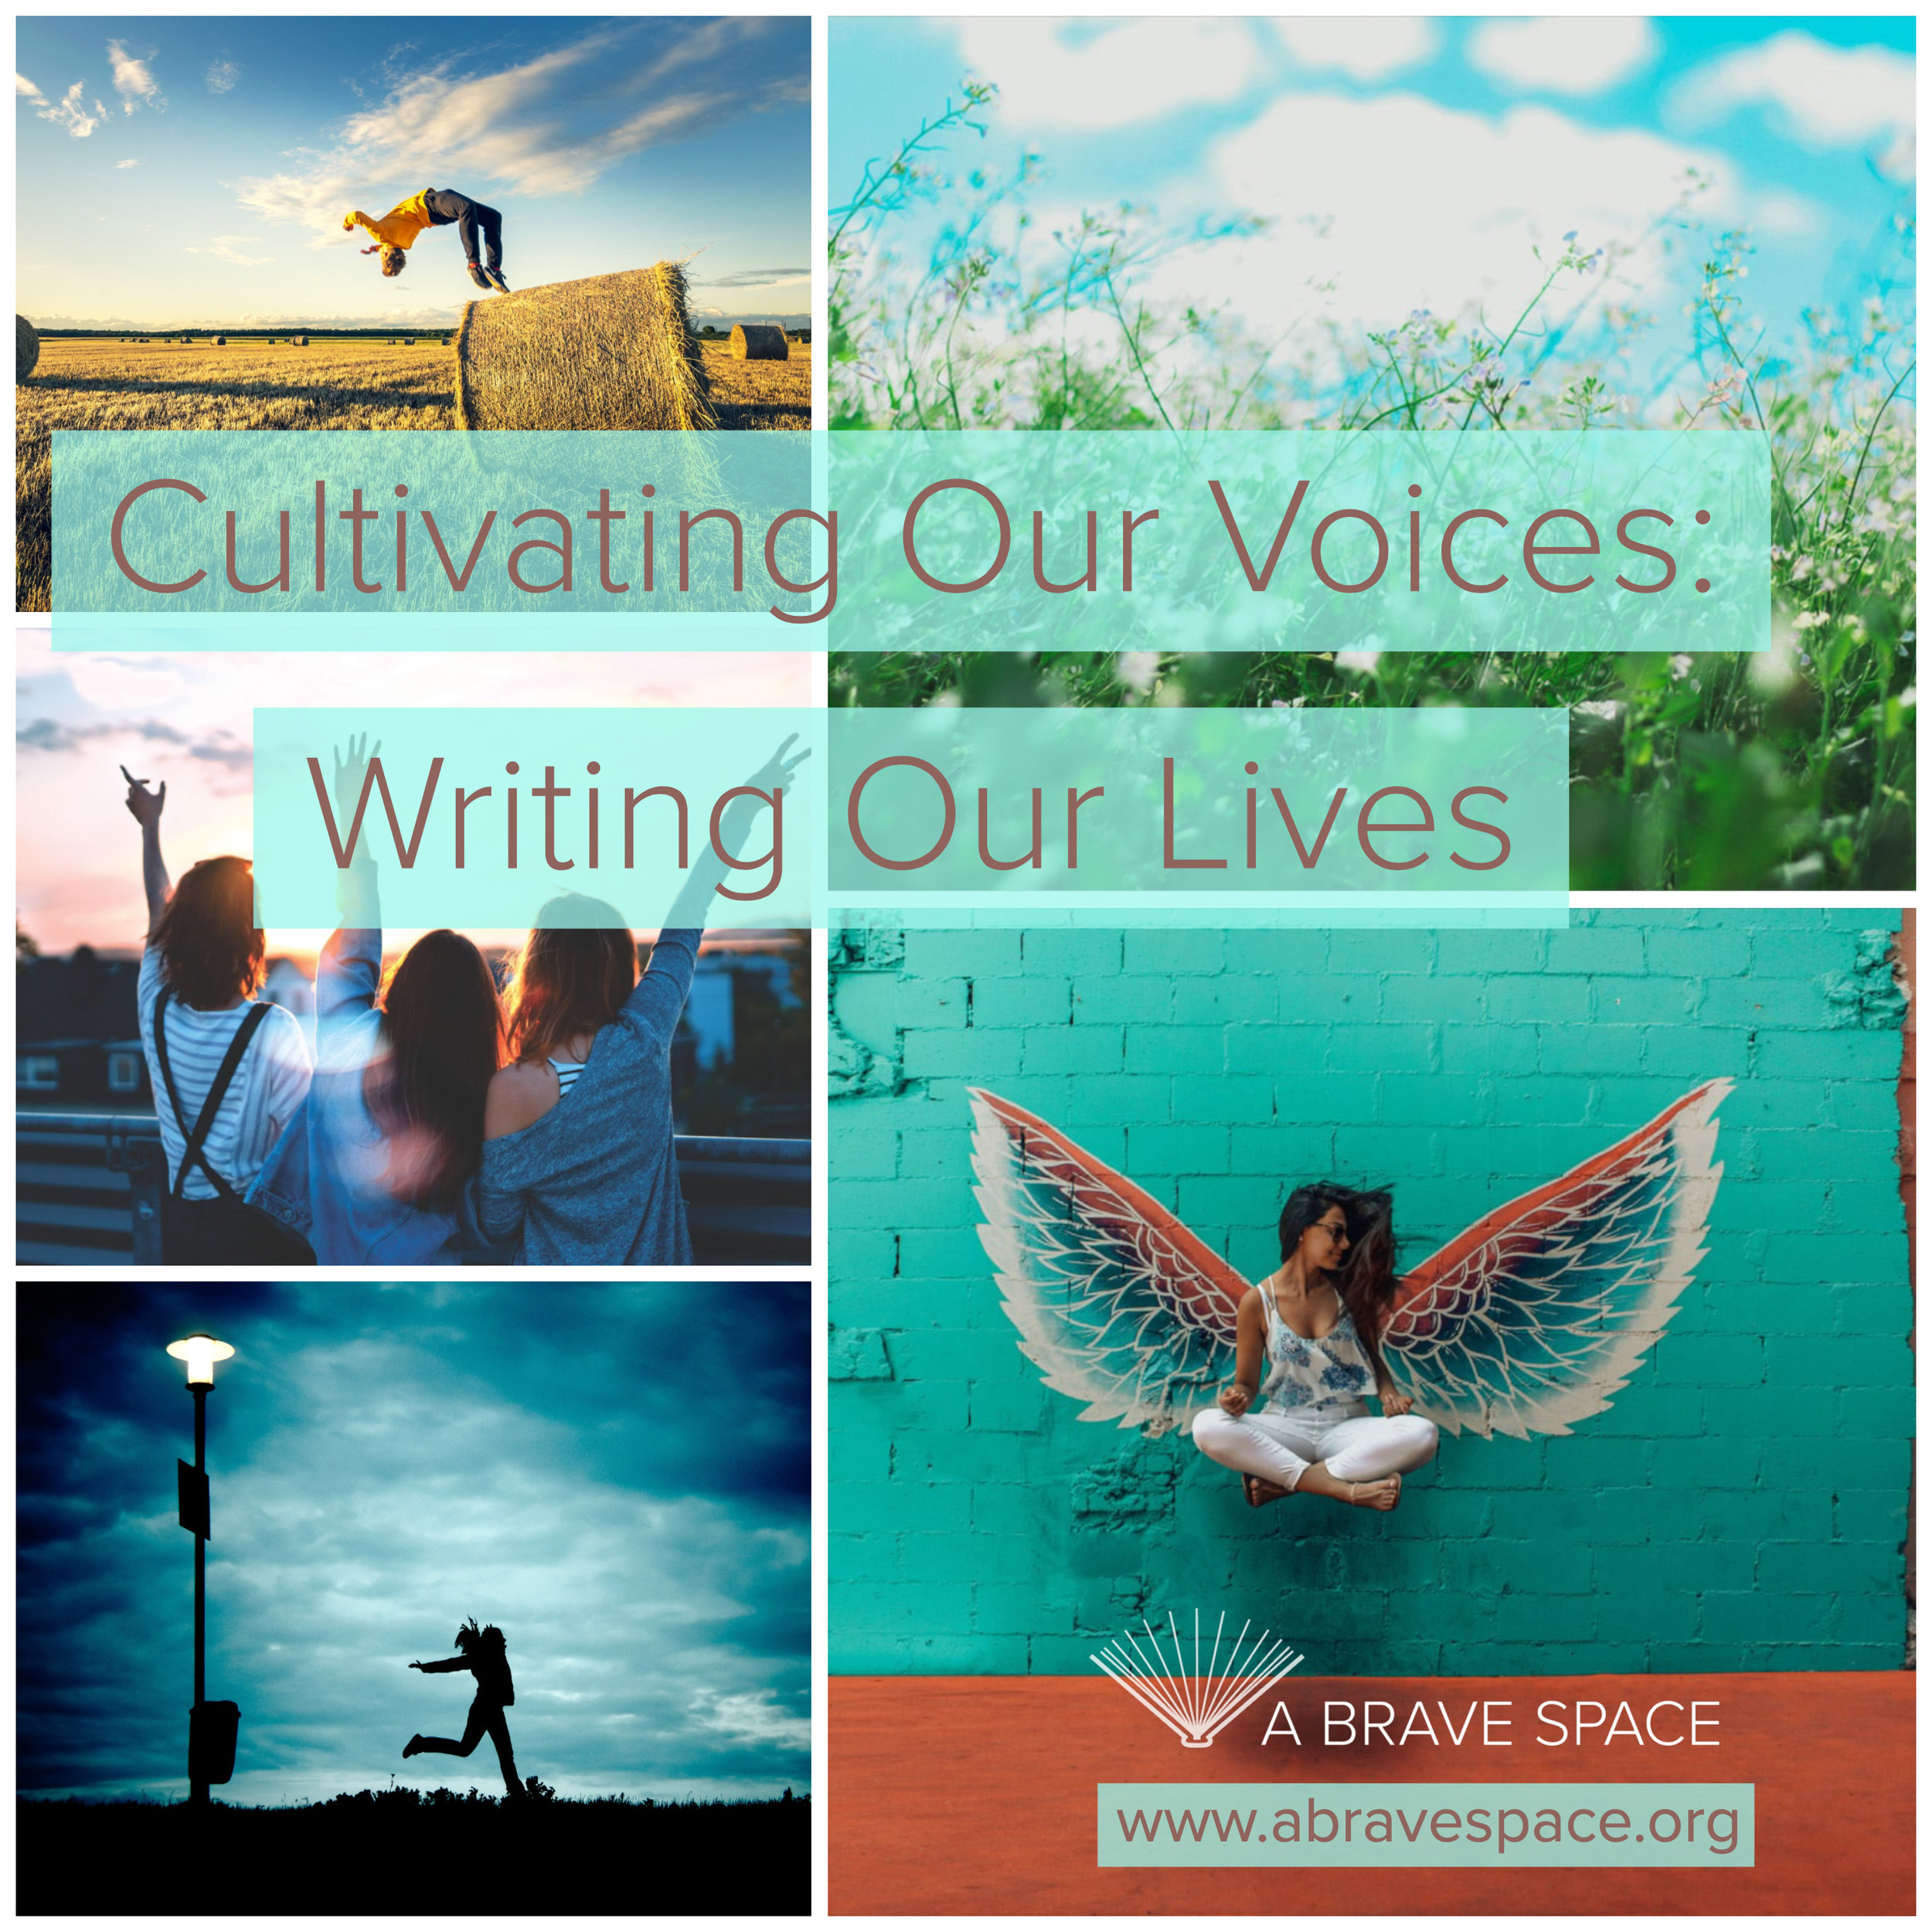 Cultivating Our Voices: Writing Our Lives, and online self-paced class created by Dr. Liz Burke-Cravens offered through A Brave Space.